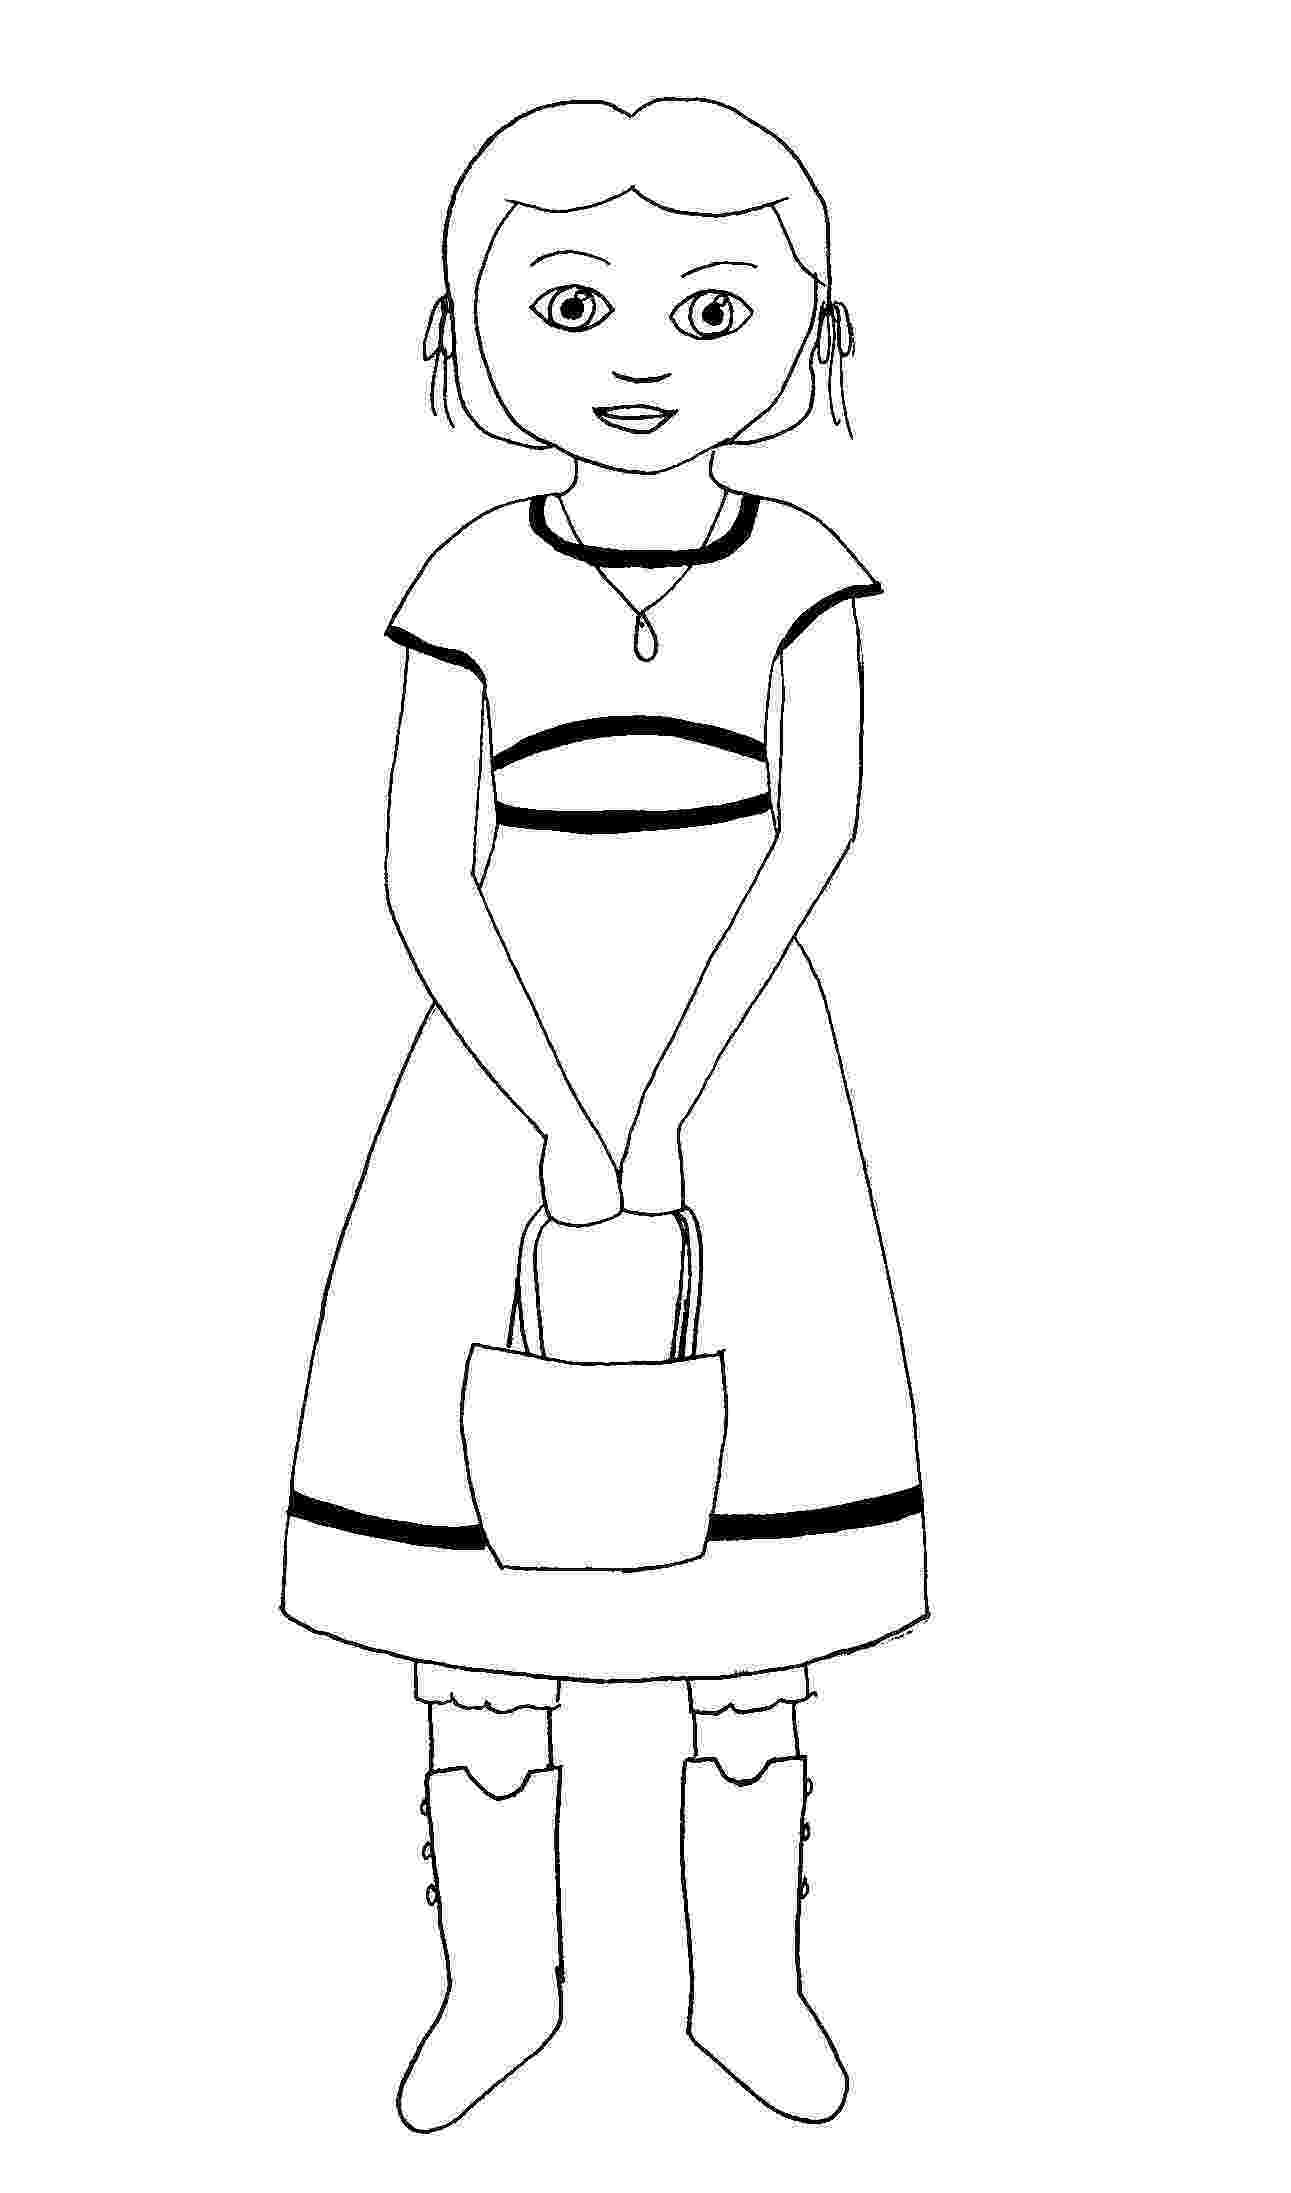 ag coloring pages my american girl doll coloring page wecoloringpagecom ag pages coloring